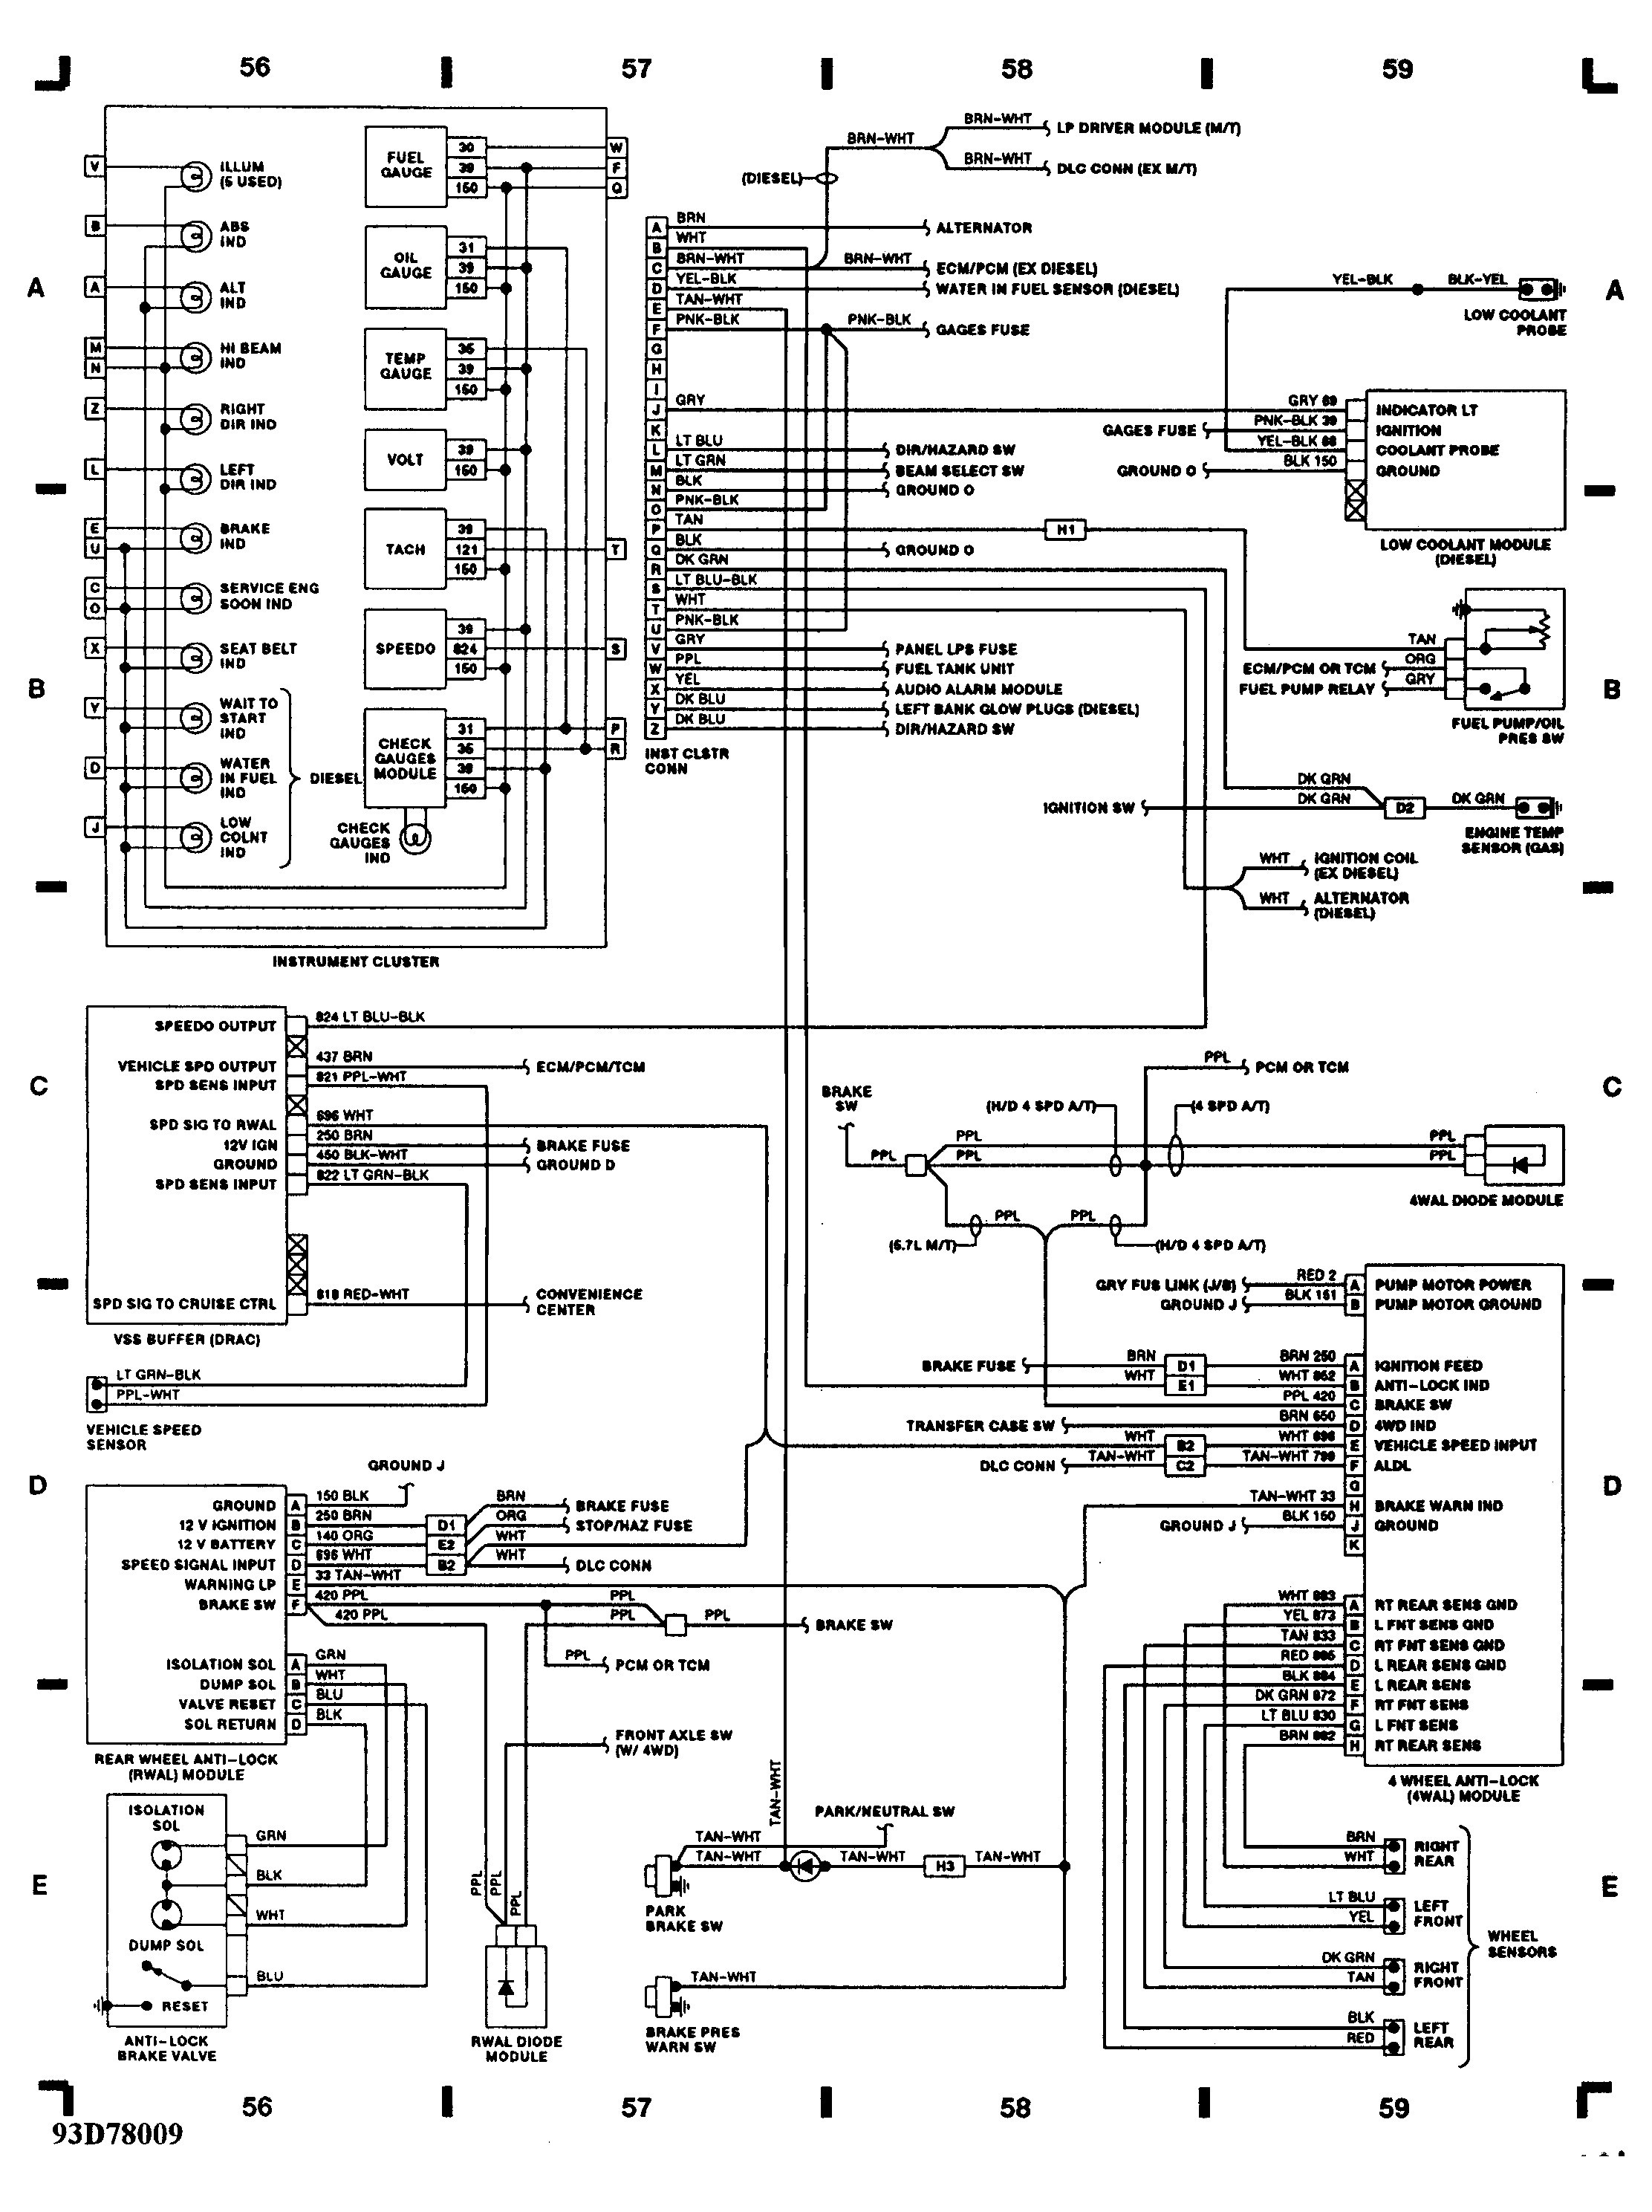 350 Motor Wire Harness Diagram - Do you want to download ... on